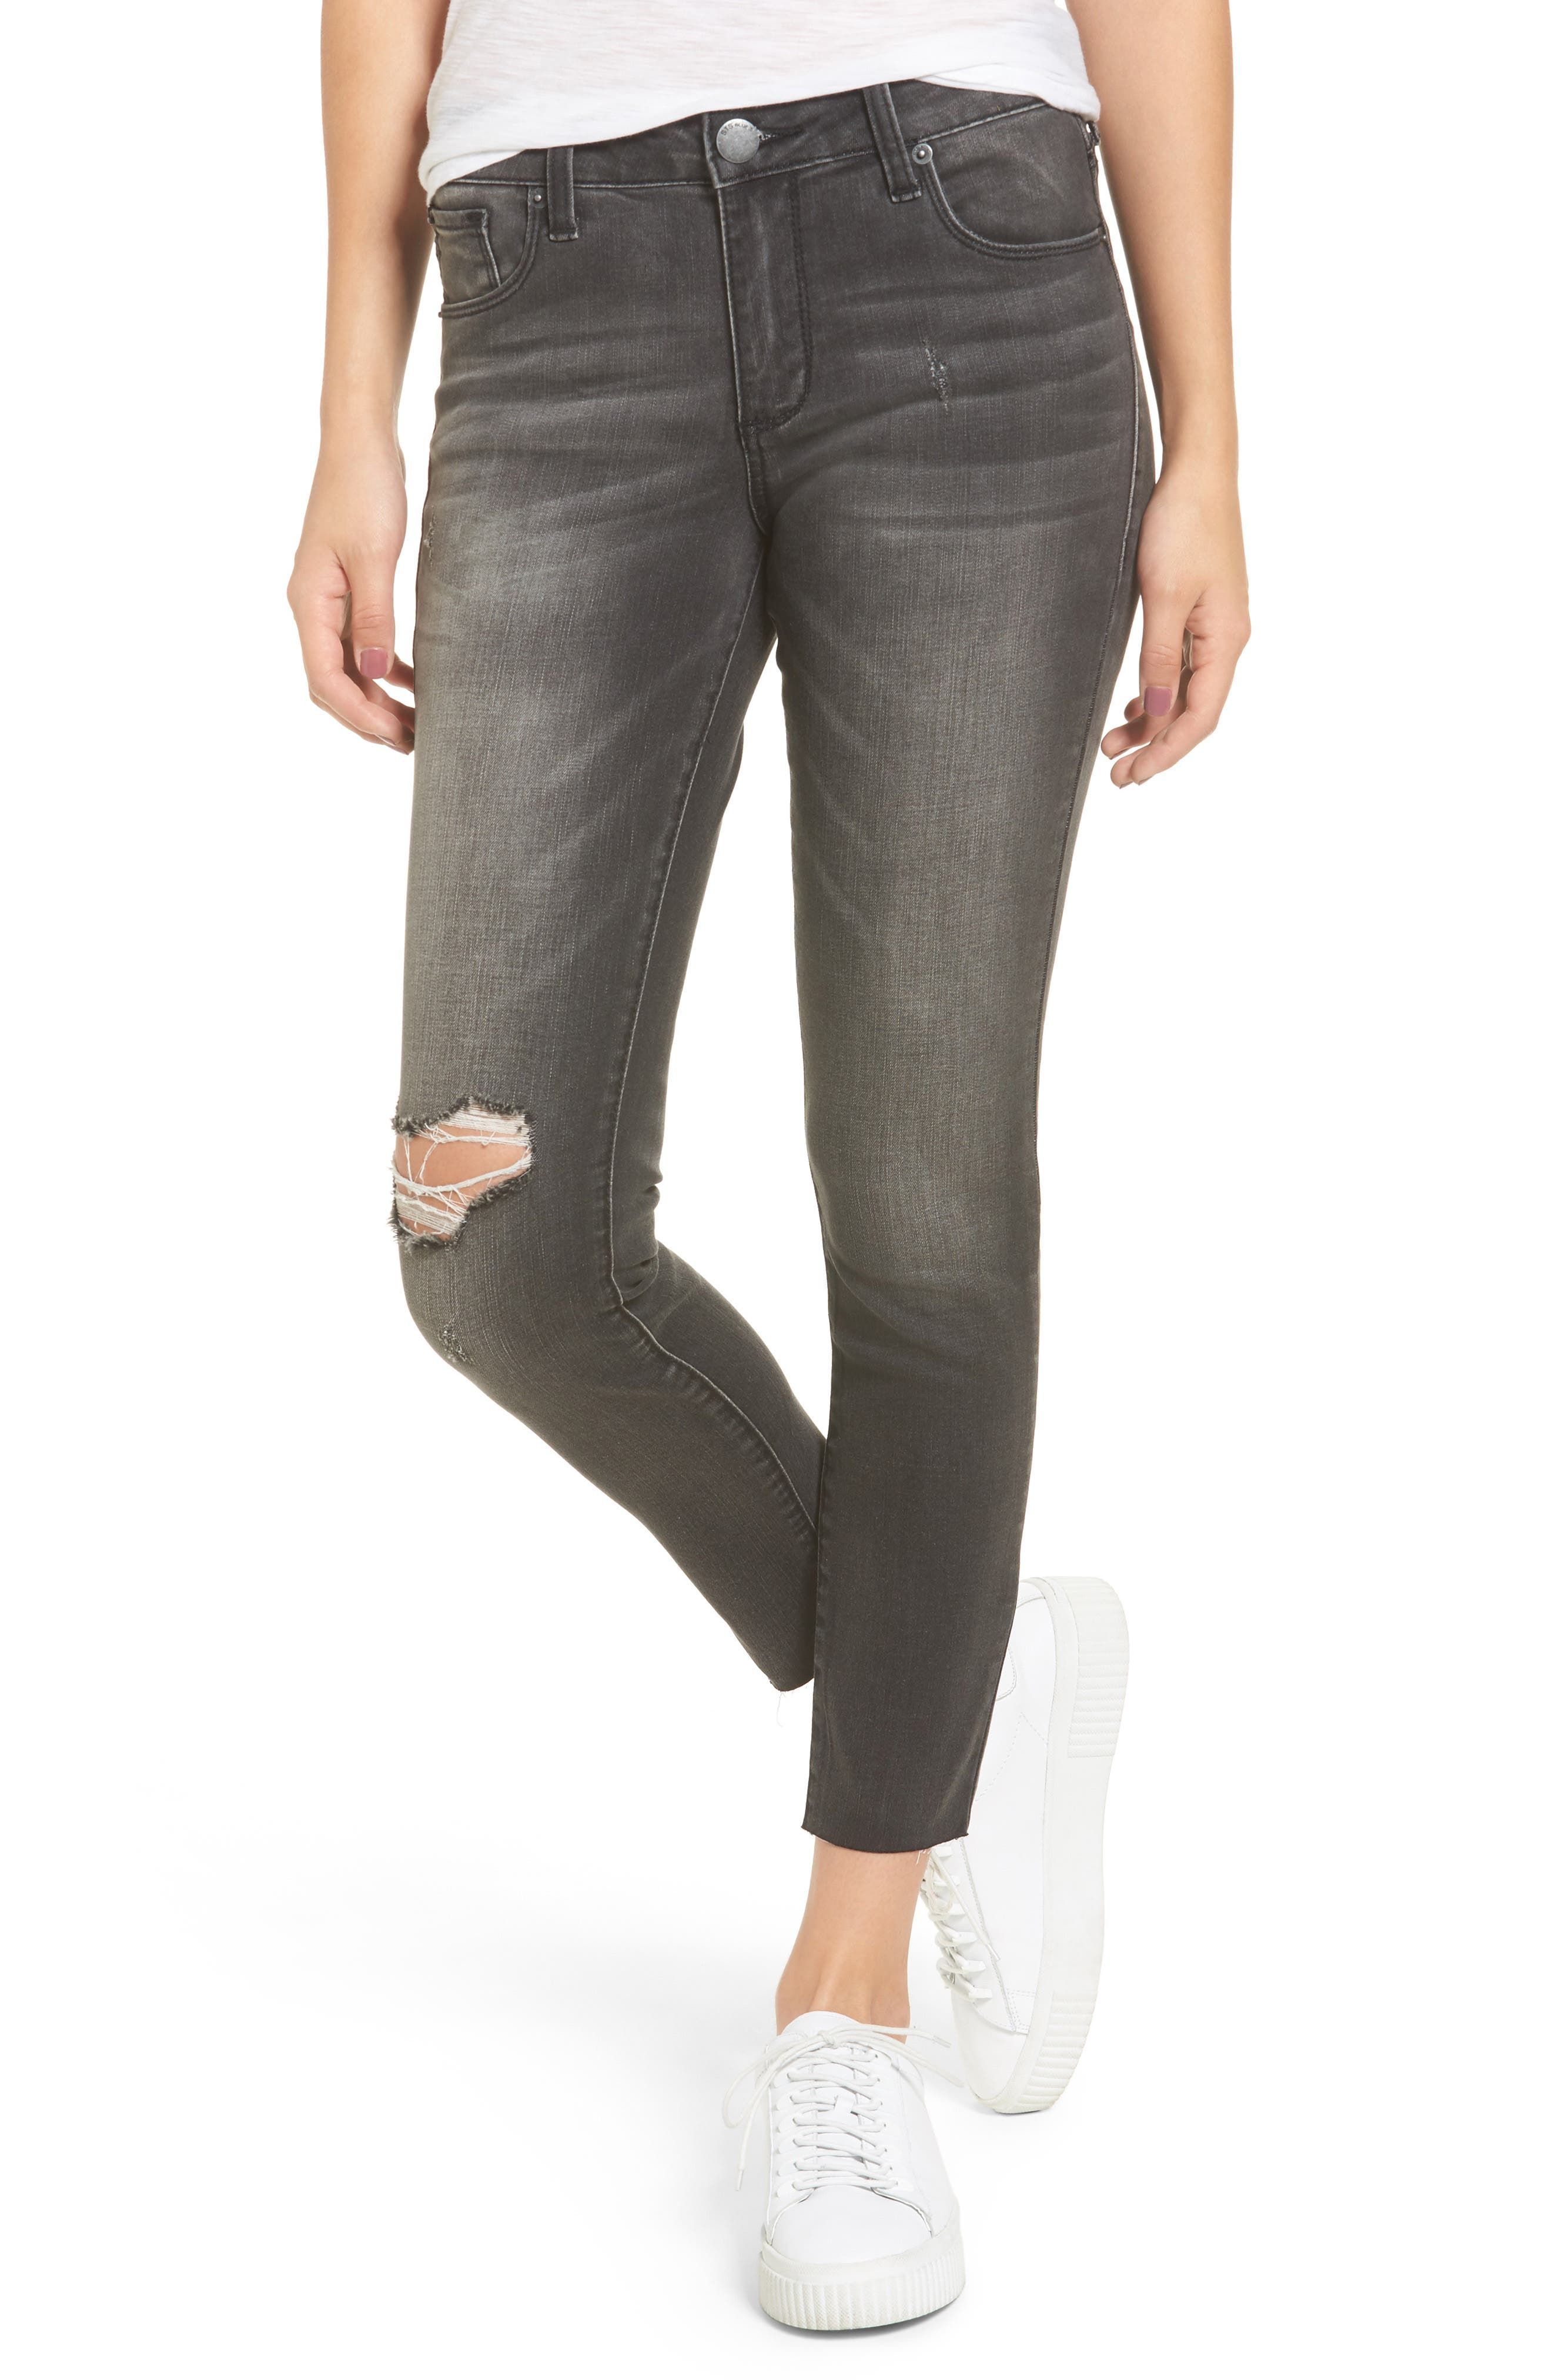 STS Emma Ripped Crop Skinny Jeans,                             Main thumbnail 1, color,                             Jennings